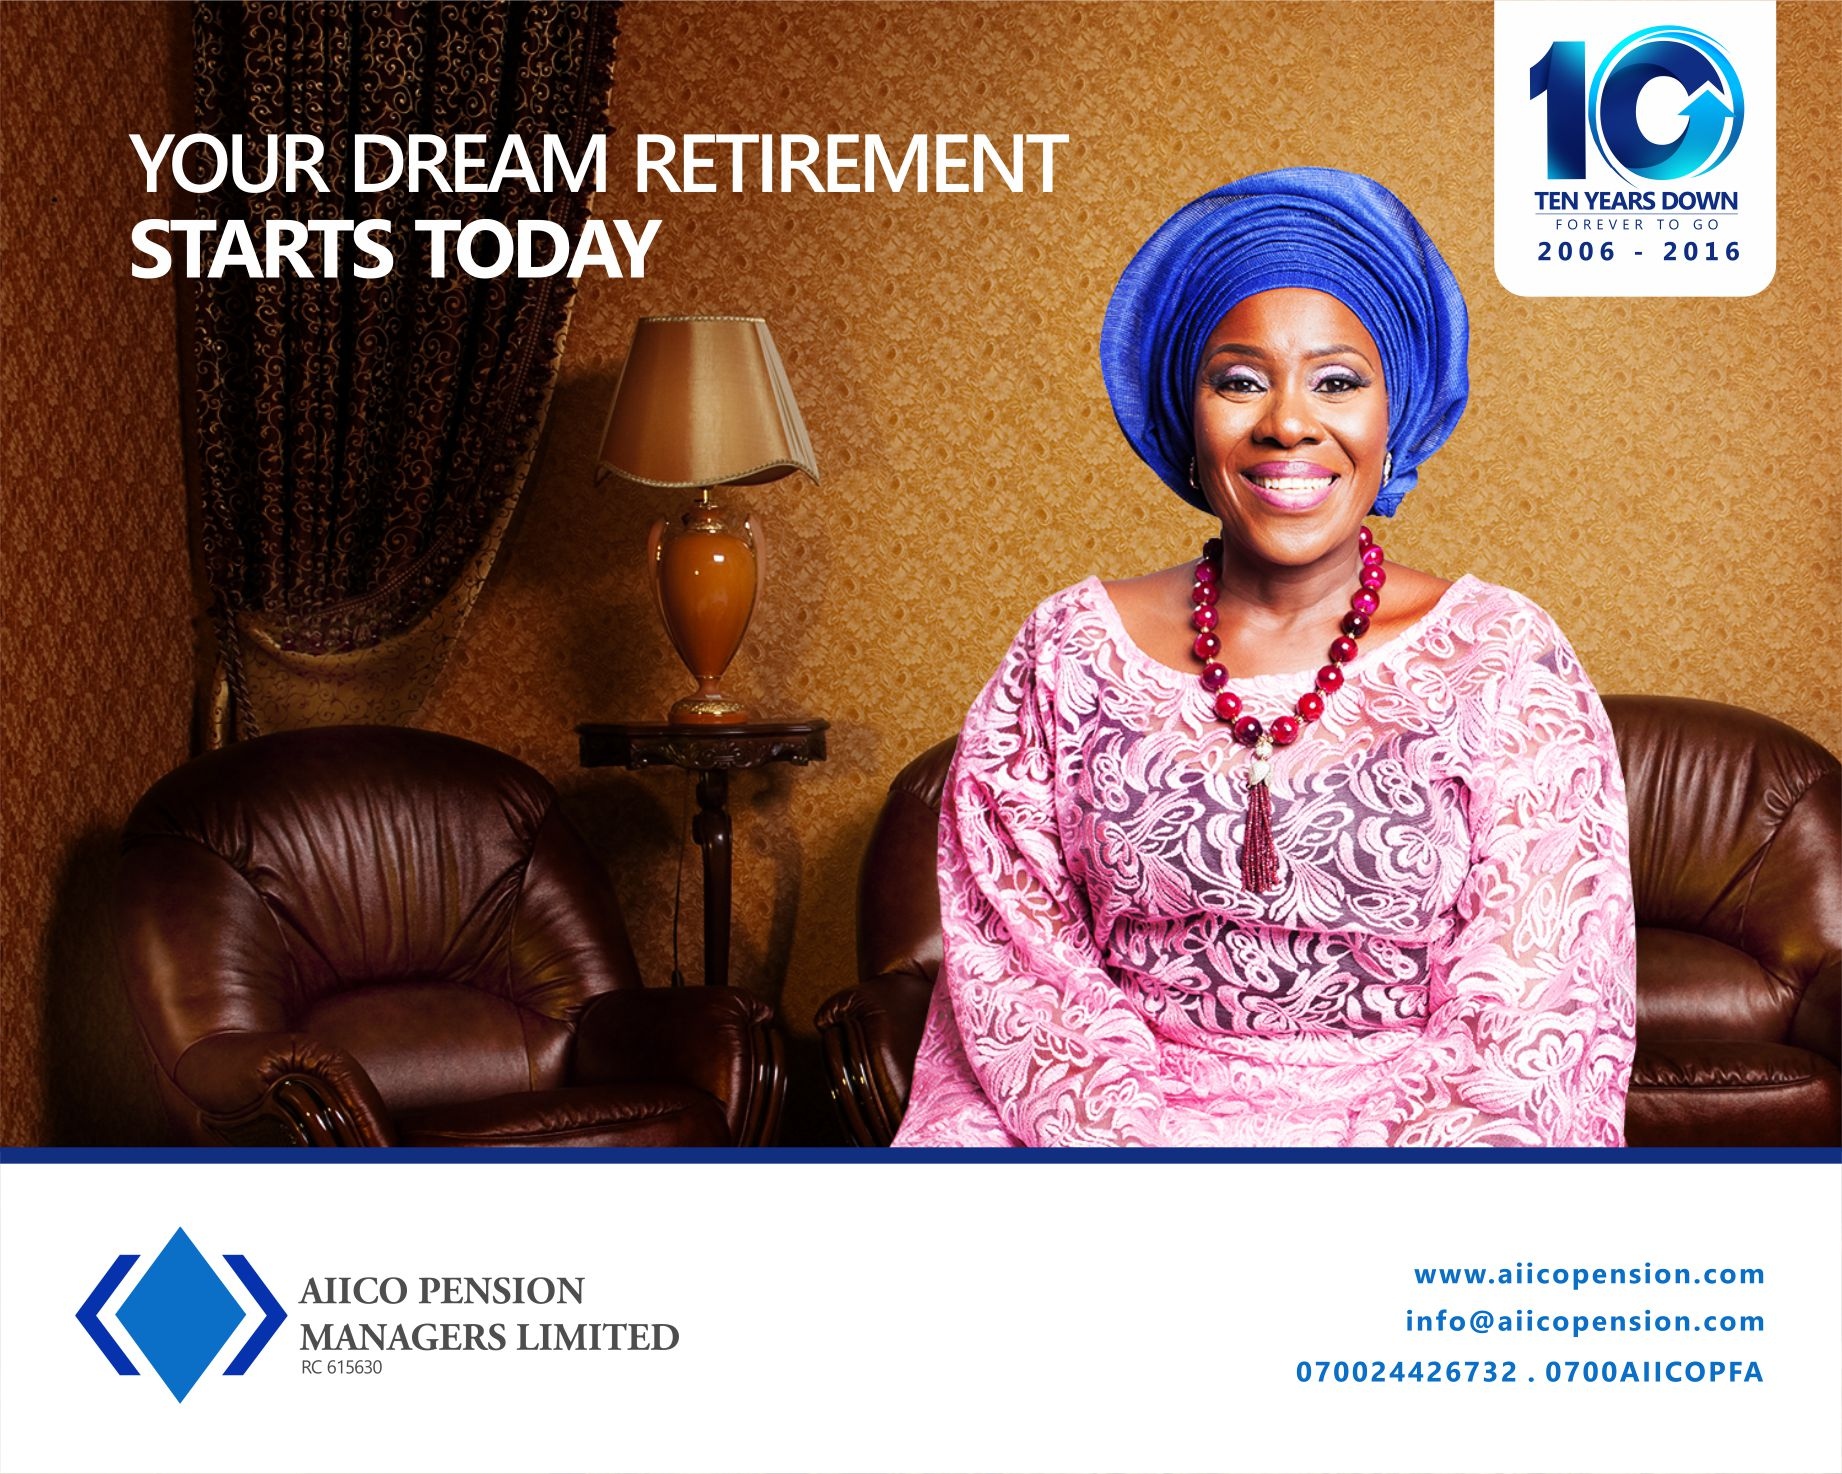 OOH Ad for AIICO Pension